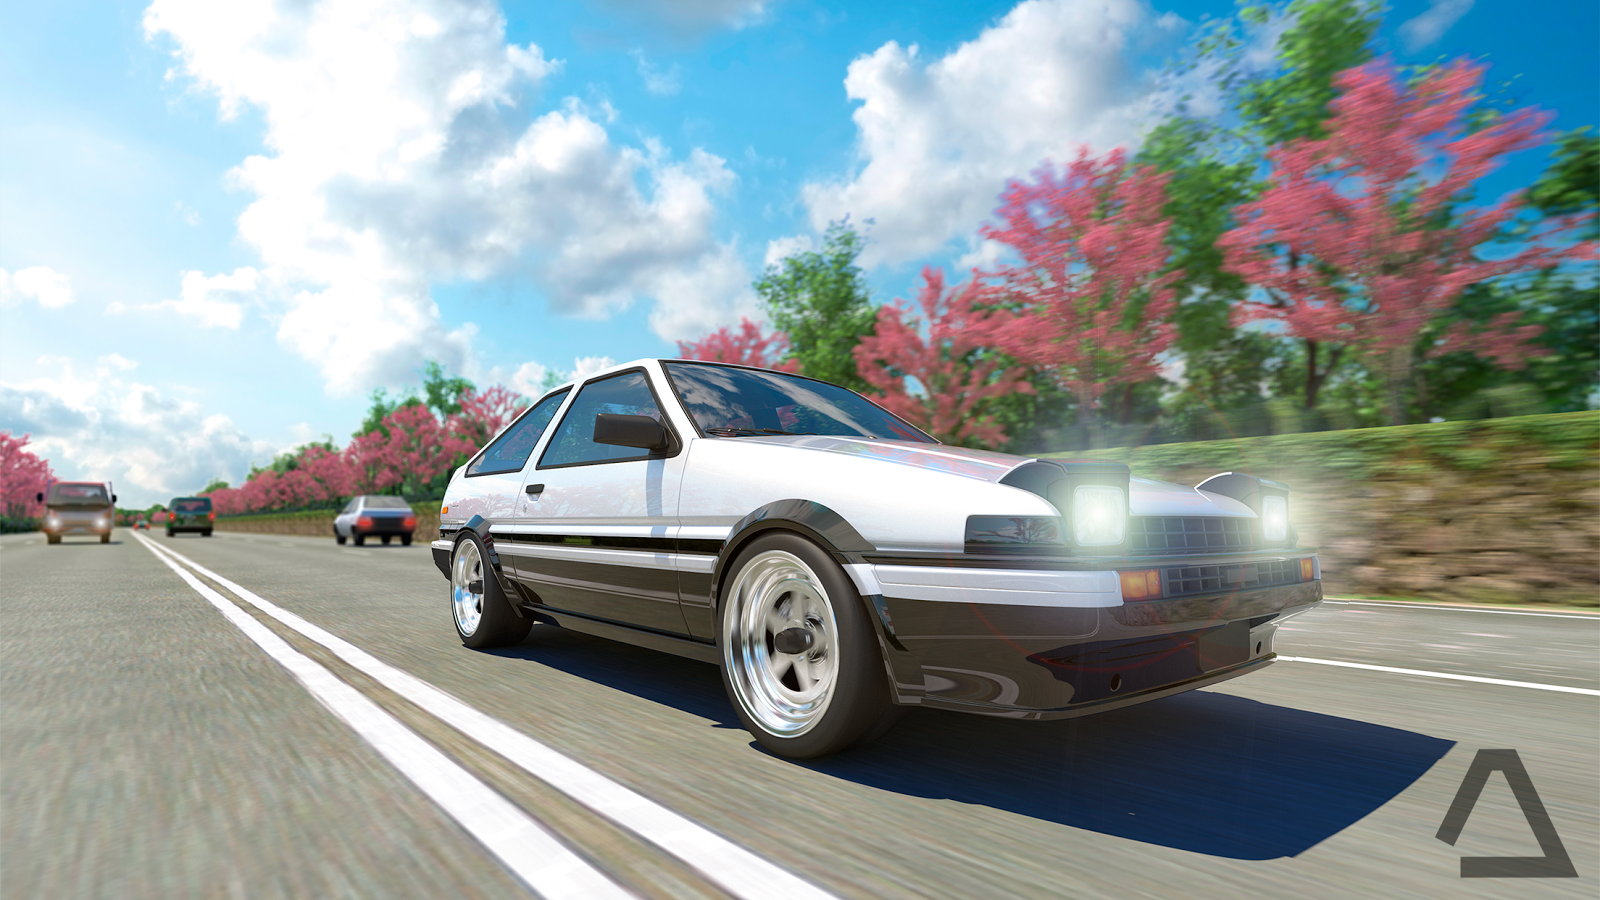 Driving Zone: Japan Screenshot 6